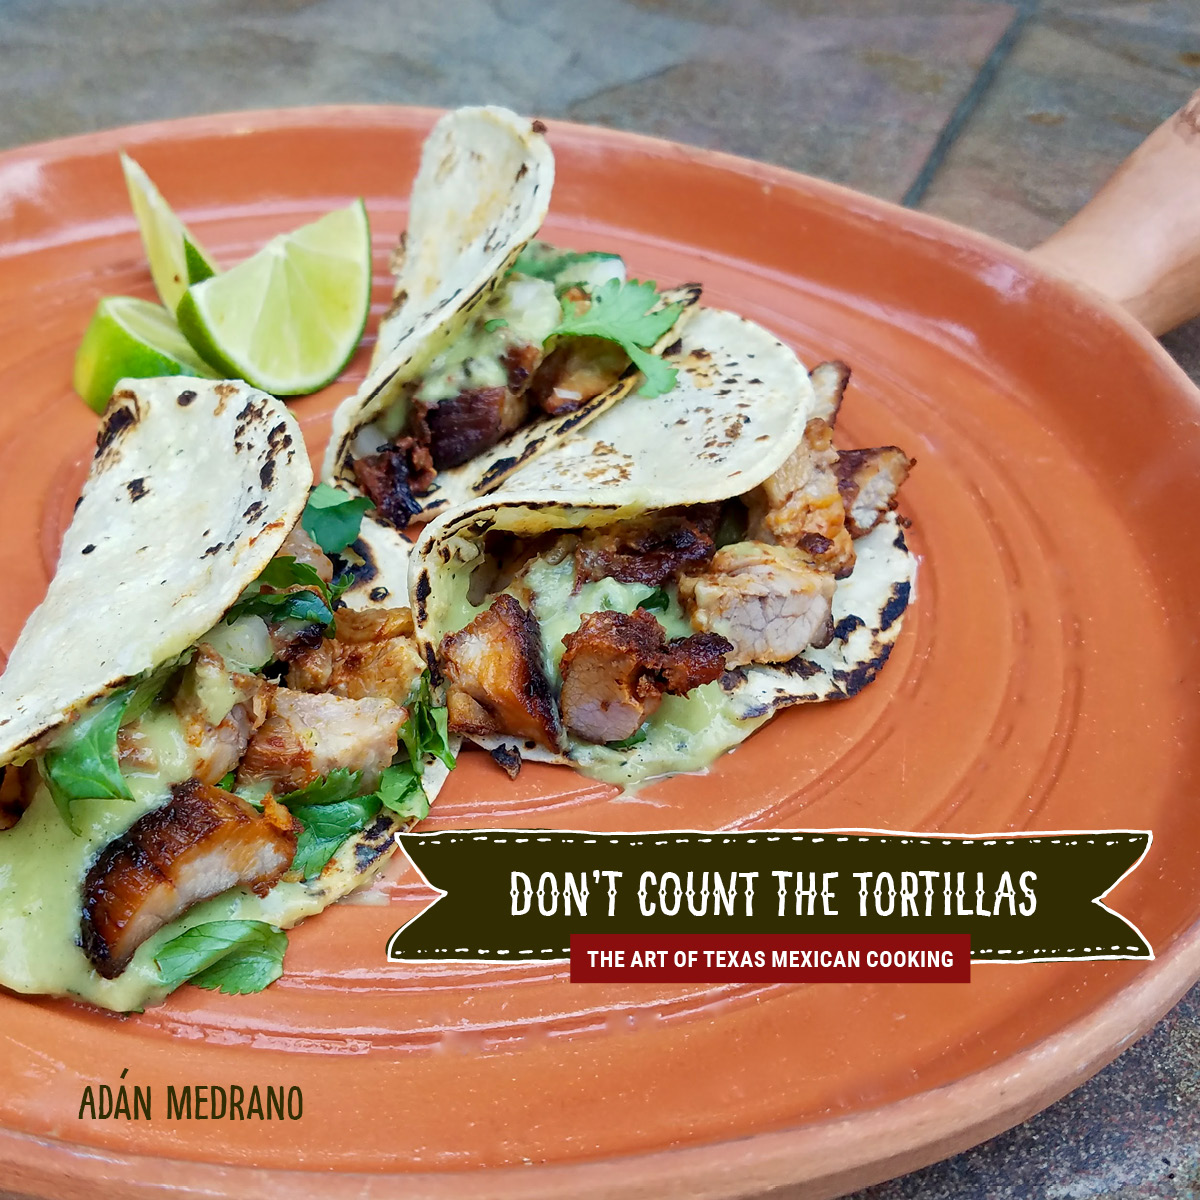 Cookbook, The Art of Texas Mexican Cooking